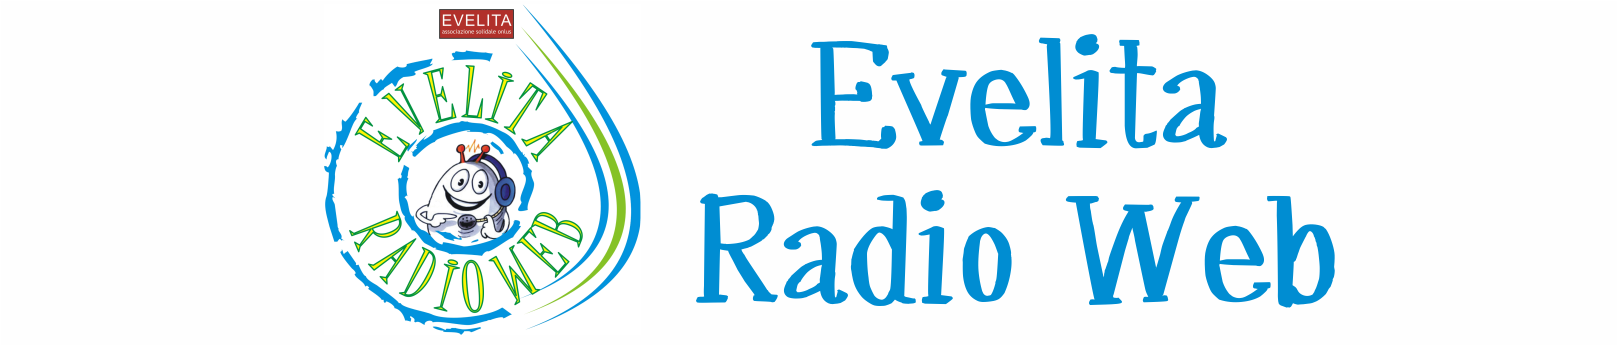 Evelita Radio Web